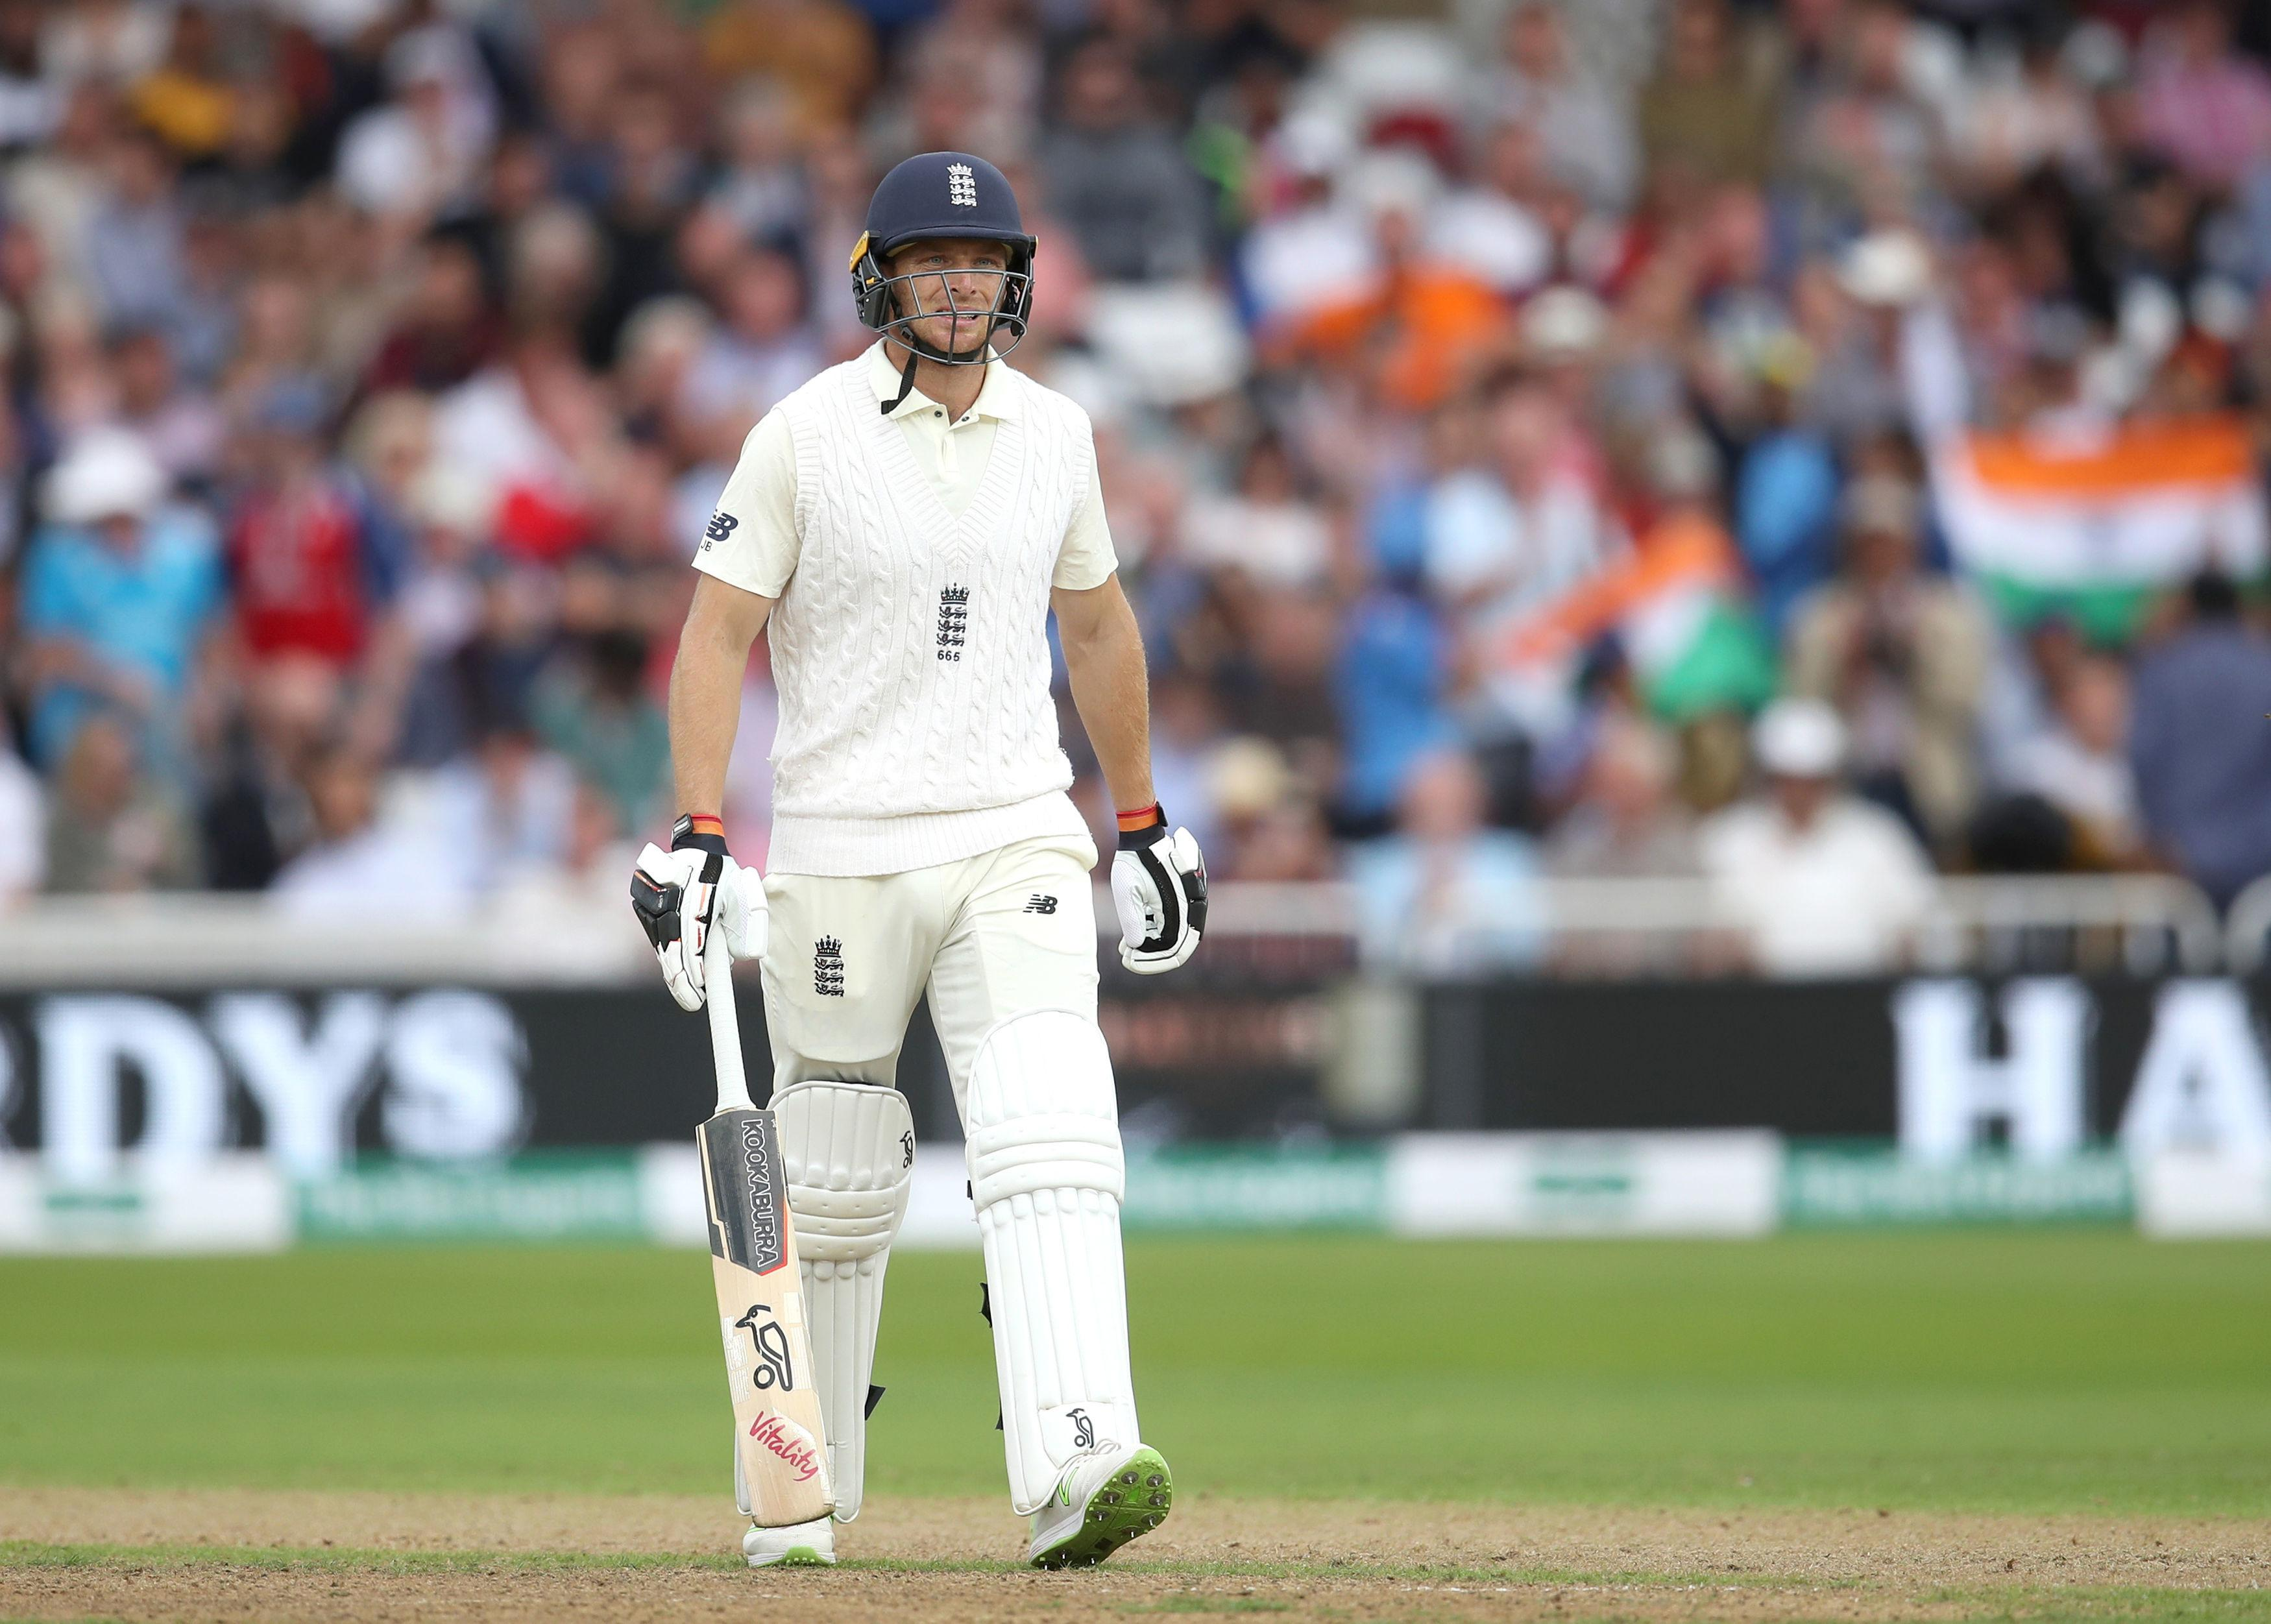 Buttler top-scored for England with 39 off just 32 balls which included two sixes